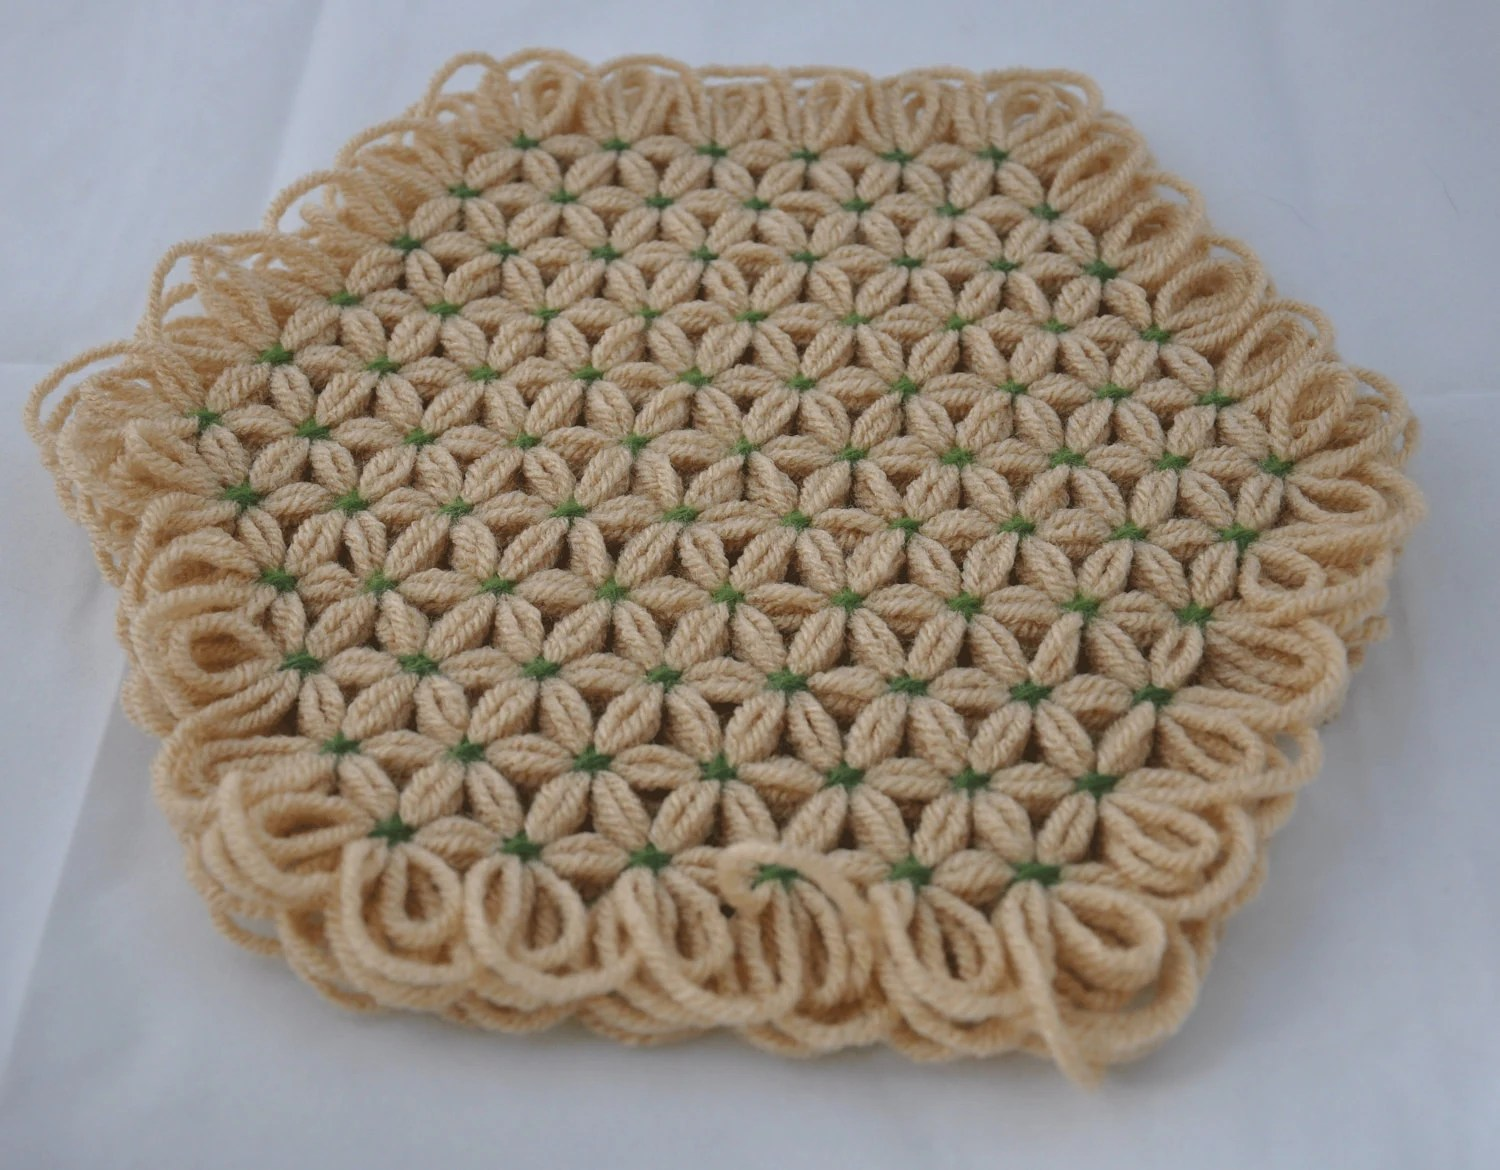 Small Trivet in 4 Layers of Tan Yarn with Medium and Lime Green Ties - OOAK (One Of A Kind)